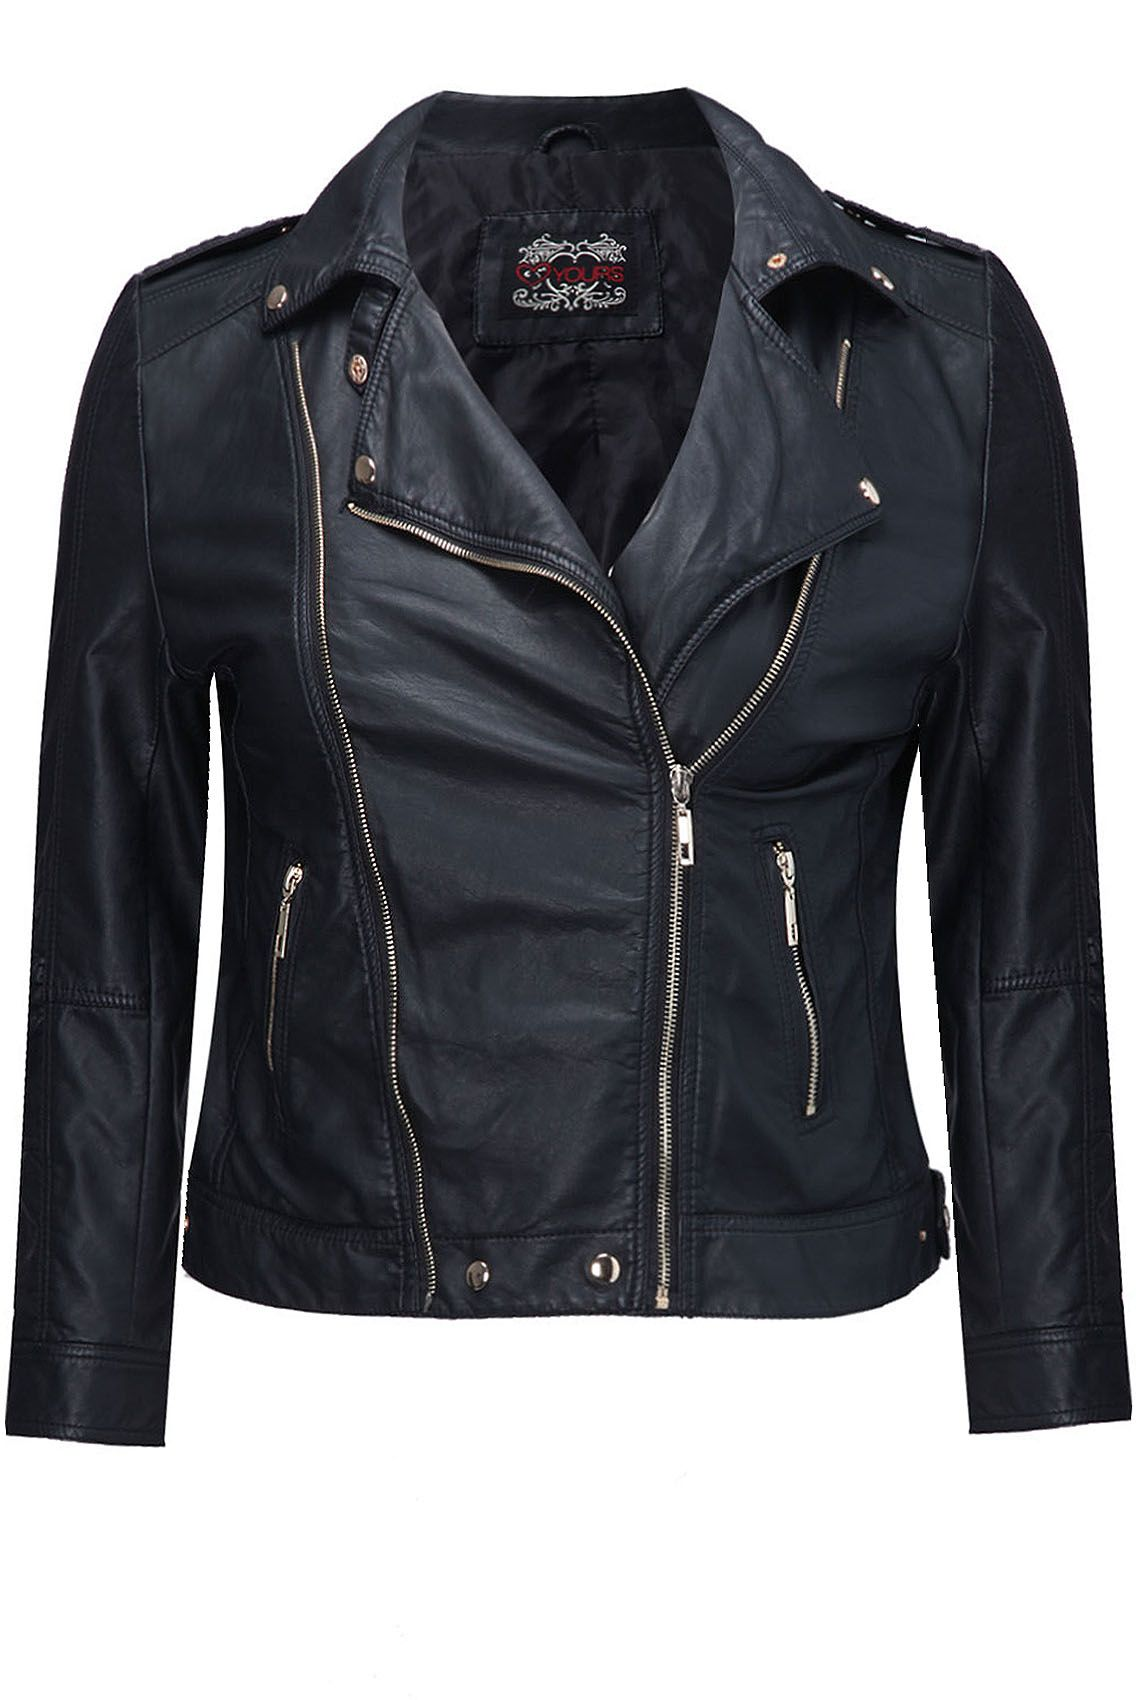 Yours Clothing Womens Plus Size Black biker jacket with zip detail ...